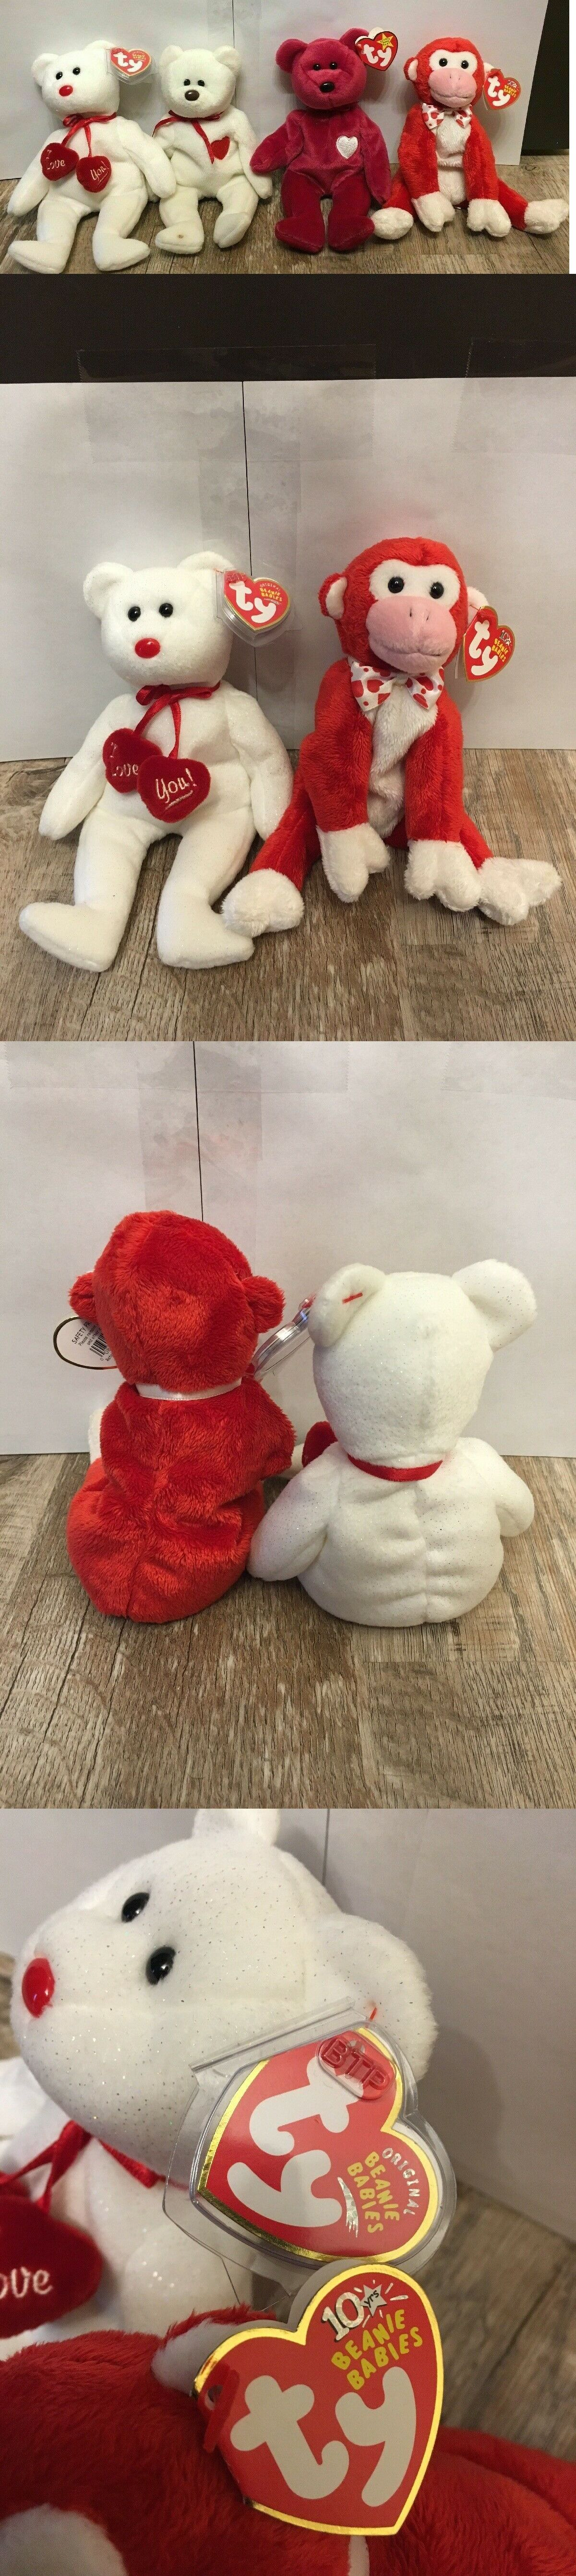 b299691c375 Retired 440  Beanie Babies Lot Rare Valentino Valentines Decade  Collectibles Vintage Bears -  BUY